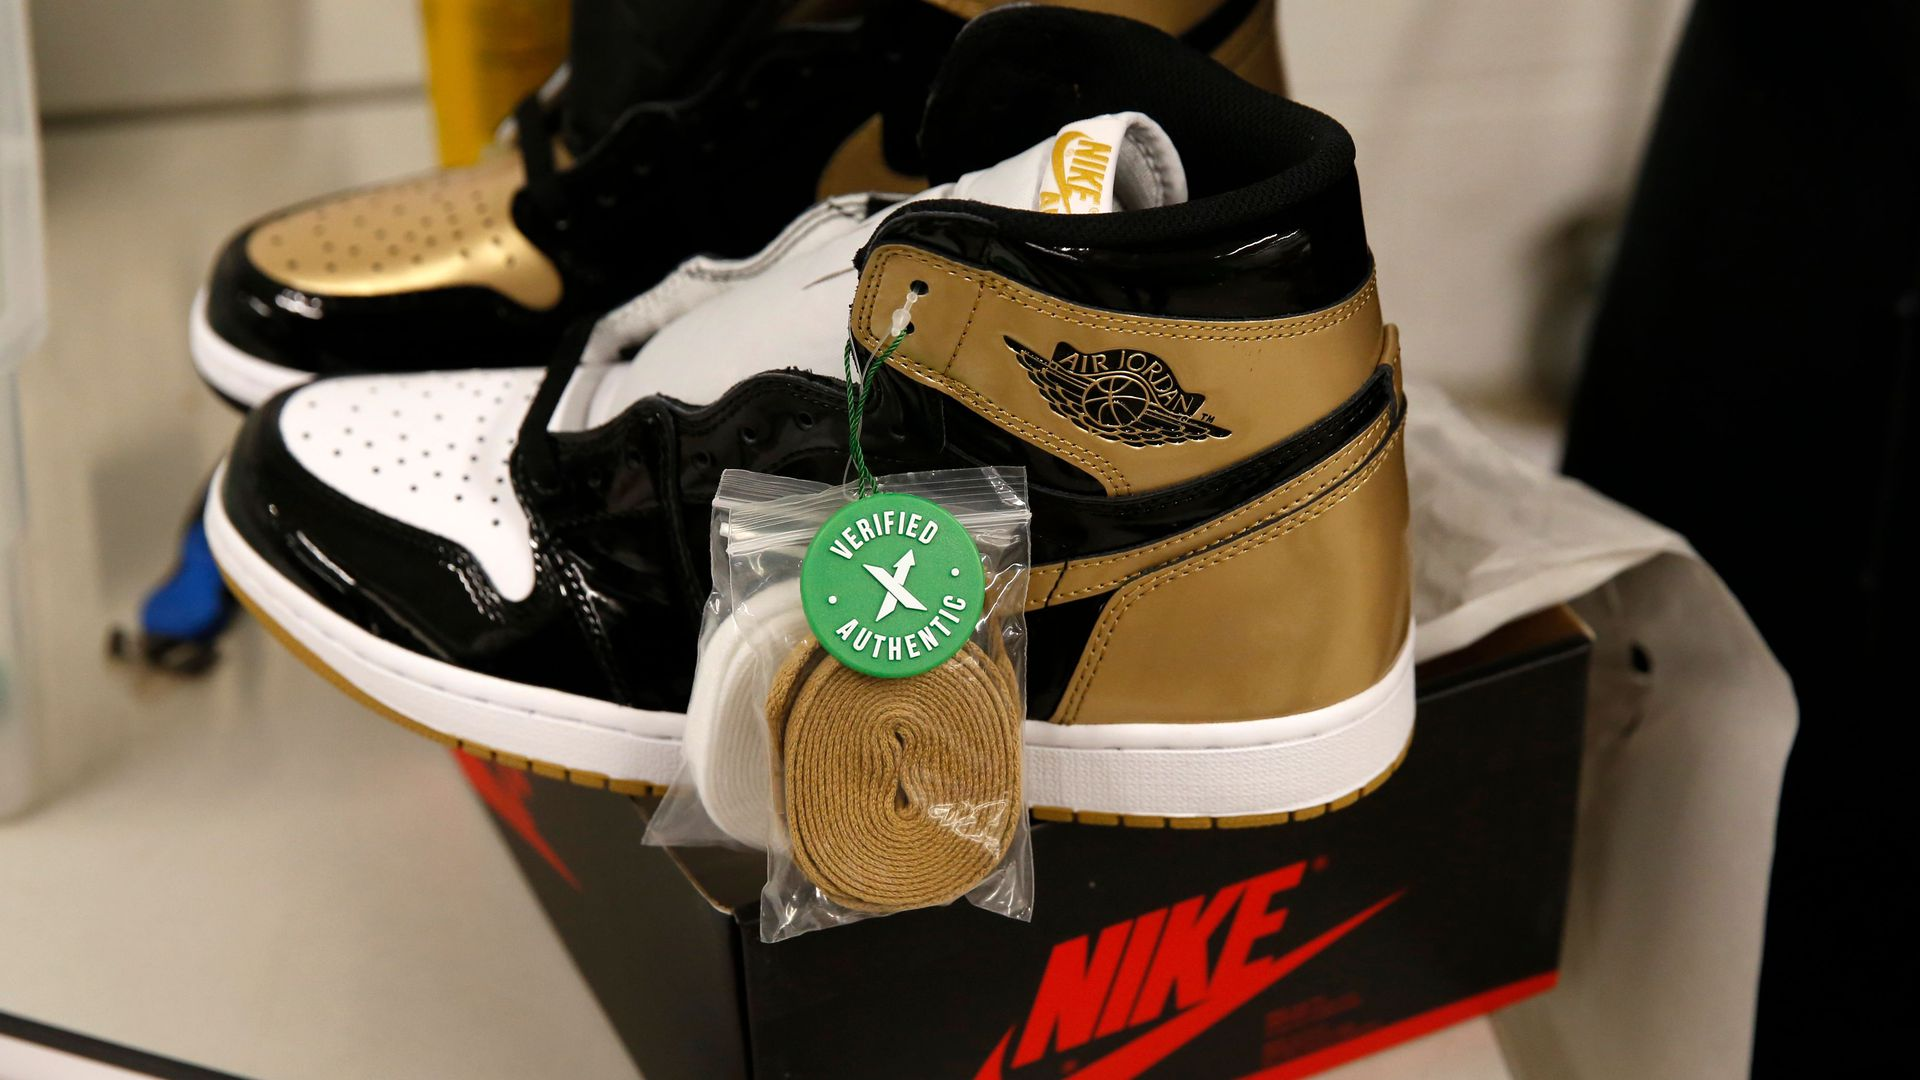 A pair of Air Jordan 1 Retro shoes are seen before being packed to ship out of Stock X